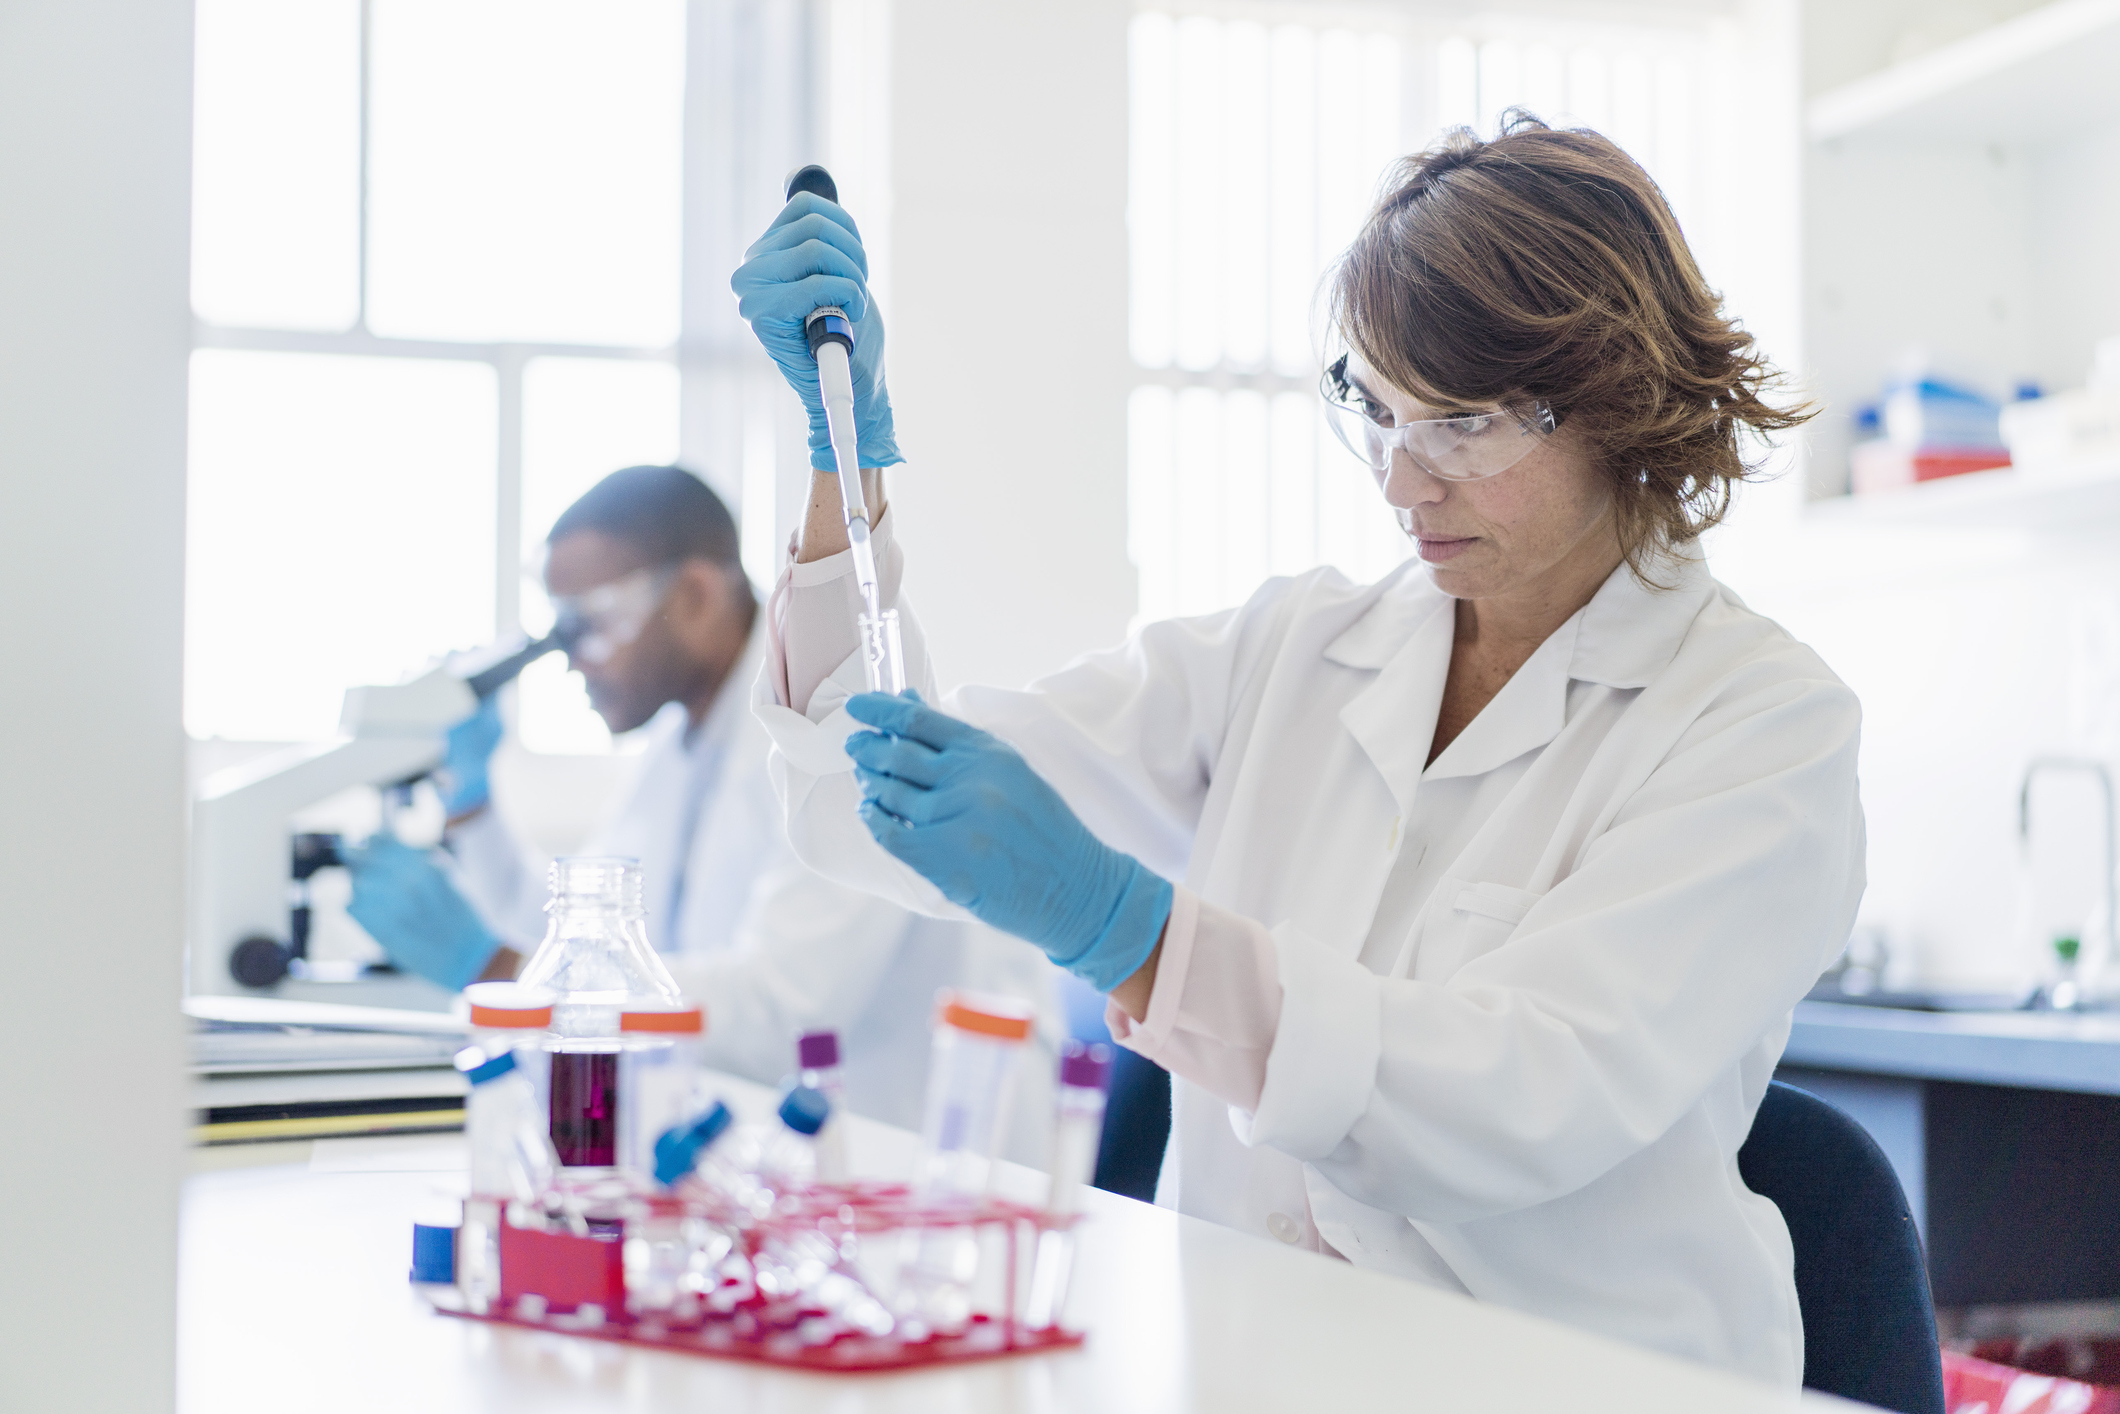 A photo of concentrated chemist working on chemicals. Female scientist using pipette with colleague in background. They are in laboratory.